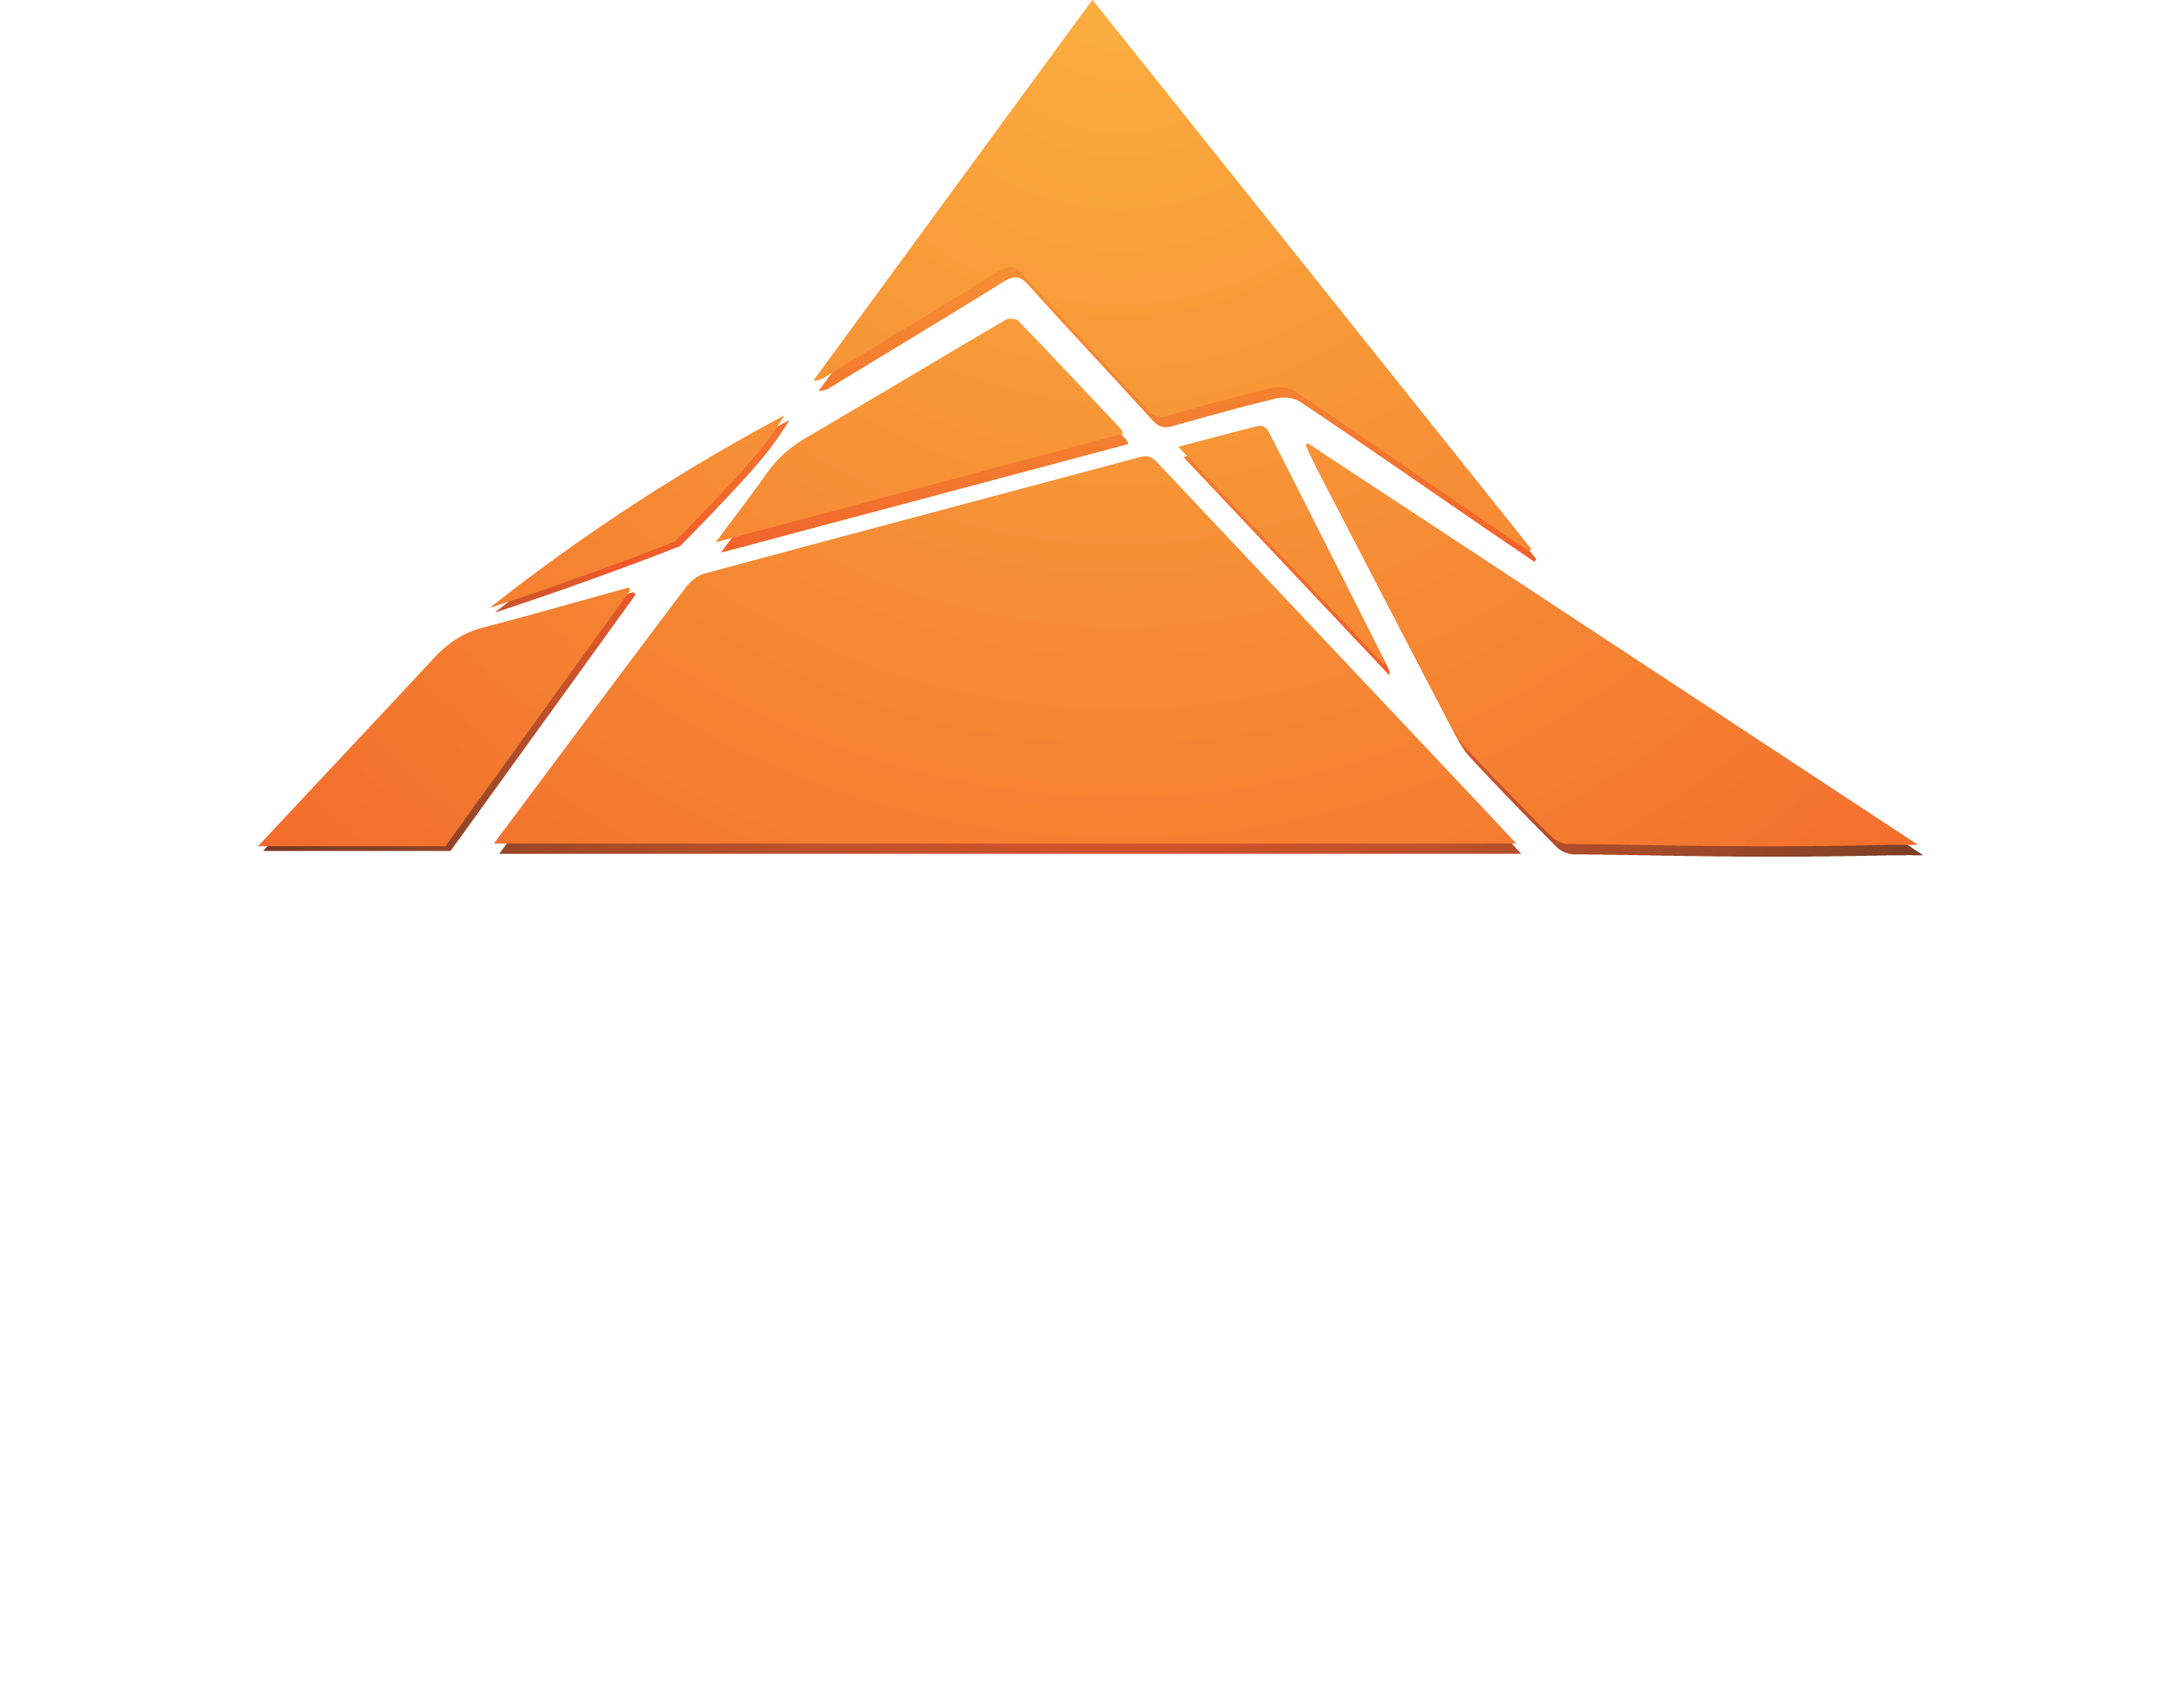 Trippy transparent triangle. Home soultrippy